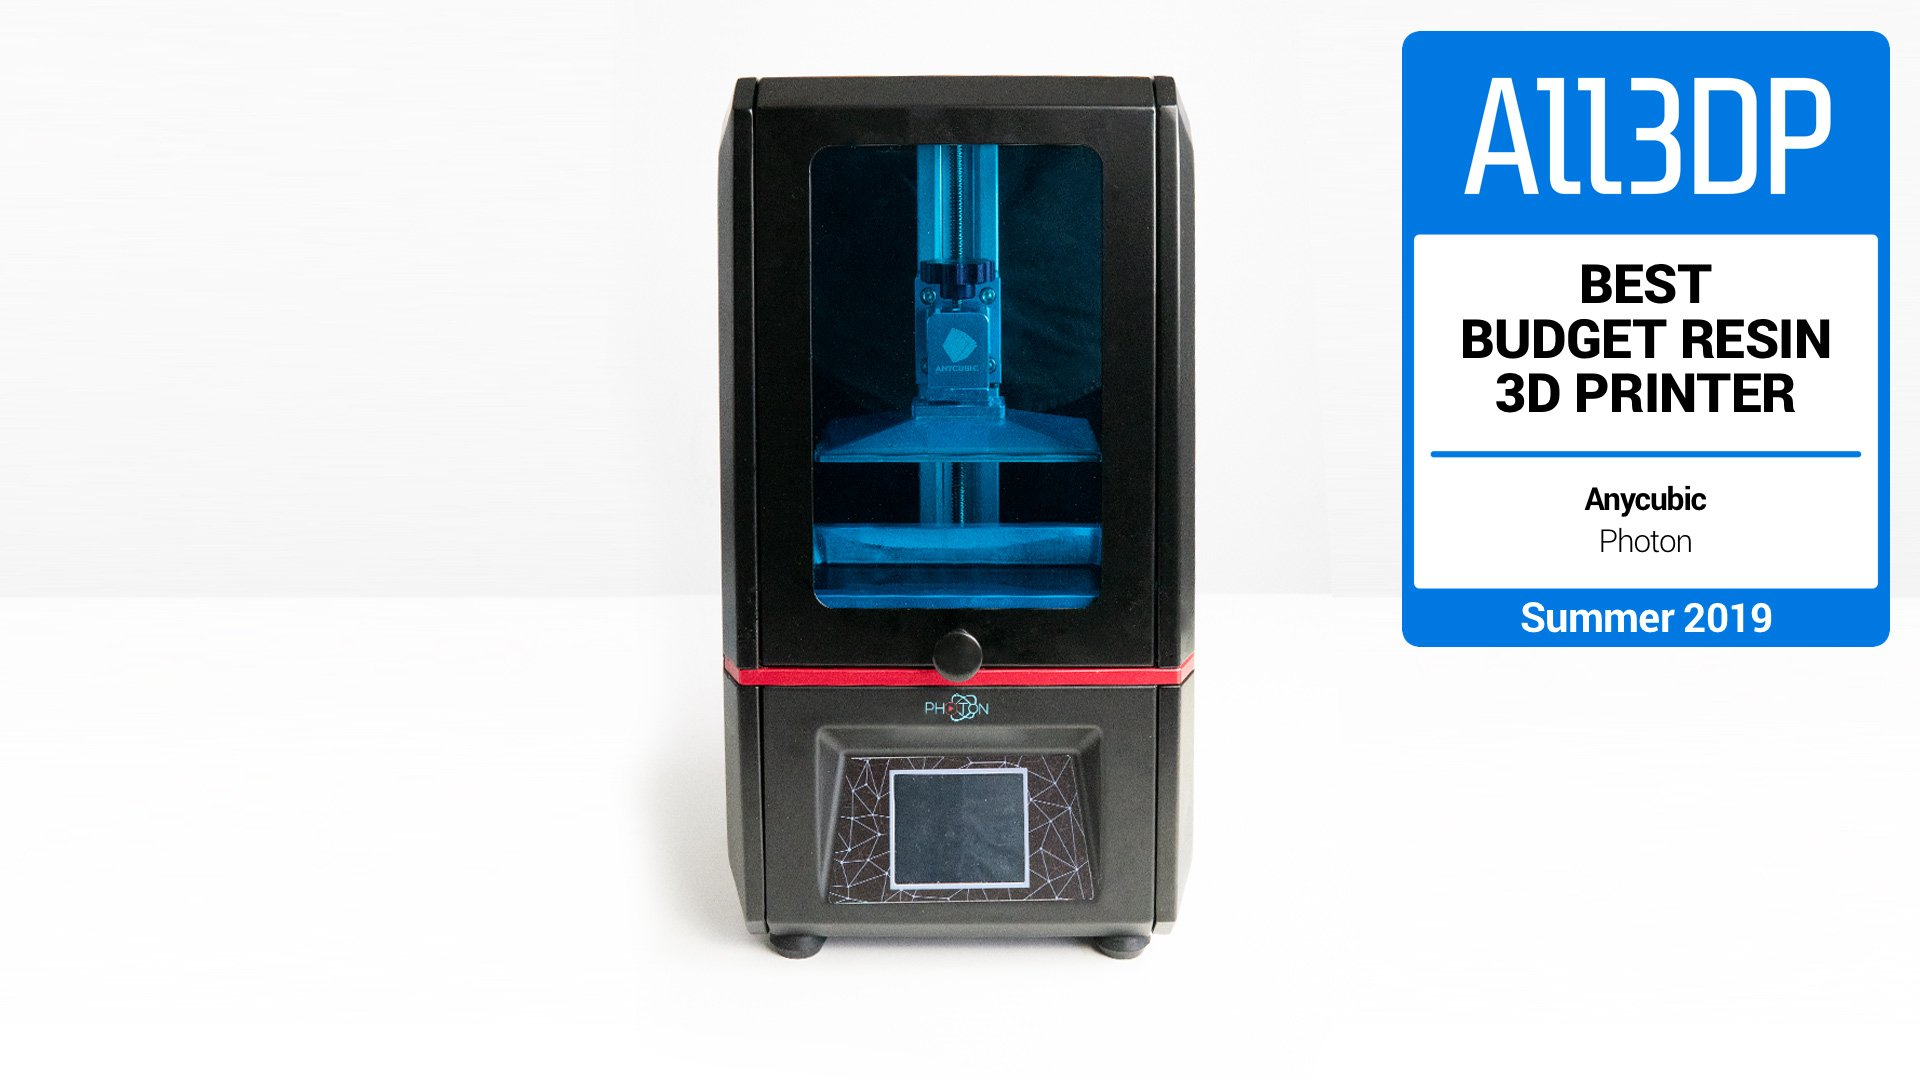 Anycubic Photon Review: Great Budget Resin 3D Printer | All3DP